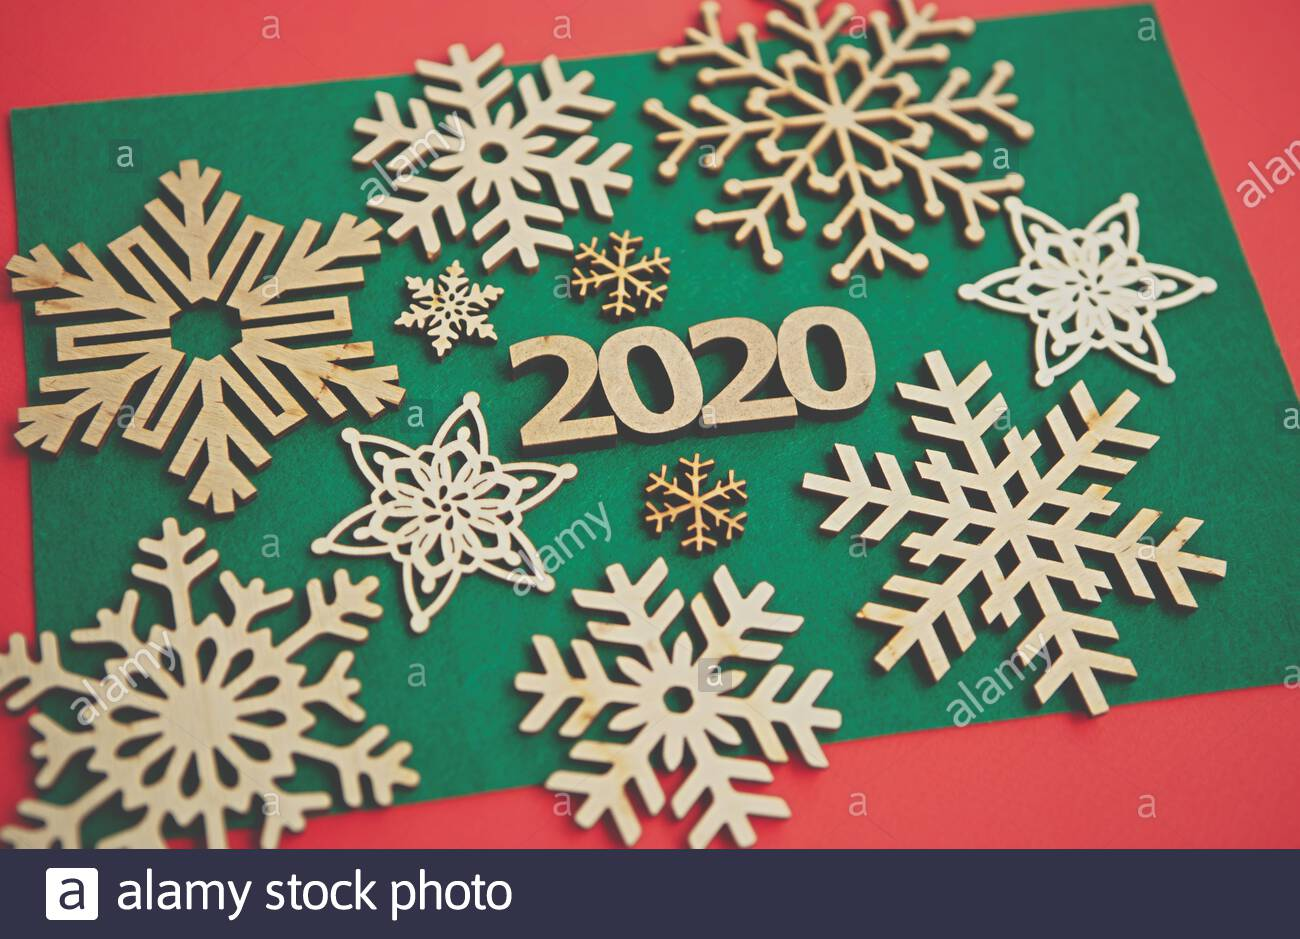 2020 winter holidays backgroundWooden snowflakes and figures on 1300x939